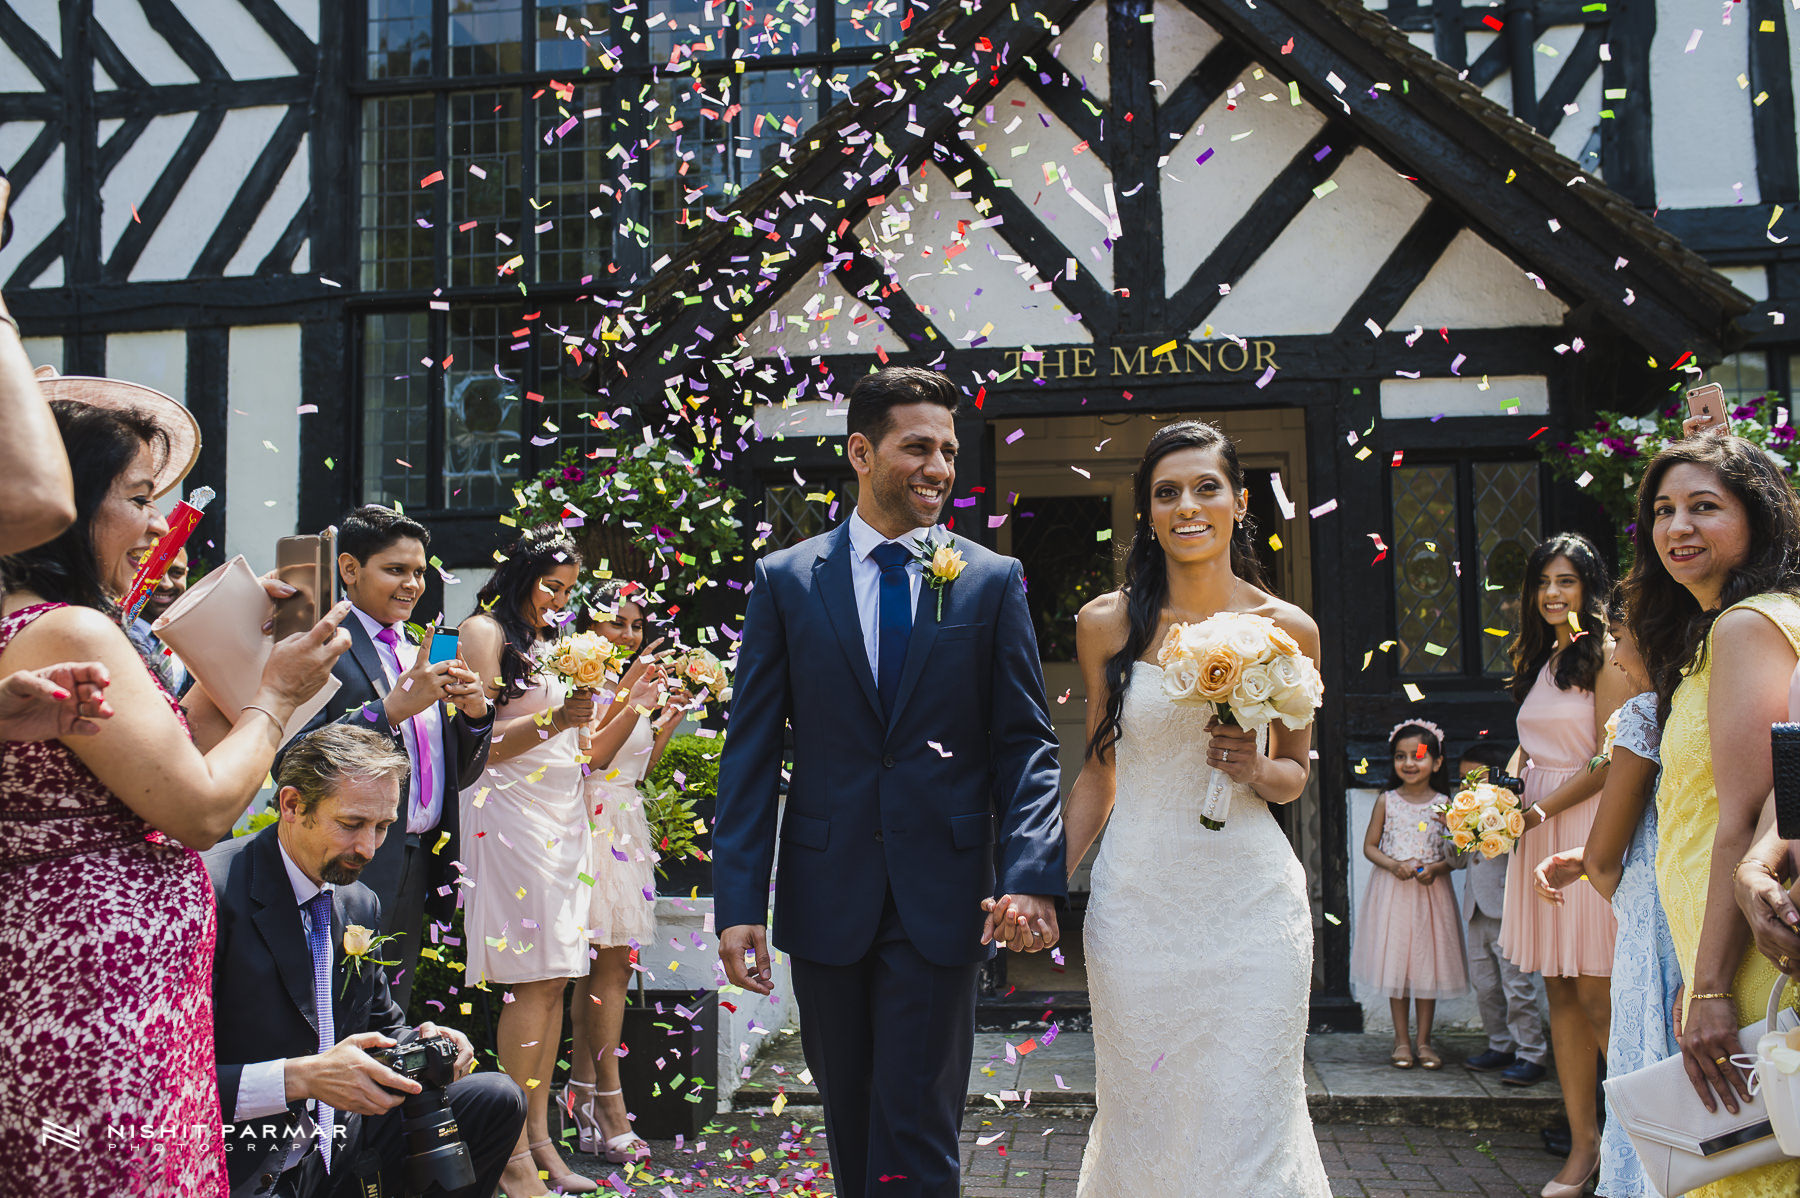 Civil Wedding Laura Ashley Manor Elstree London Wedding Photographer - confetti picture